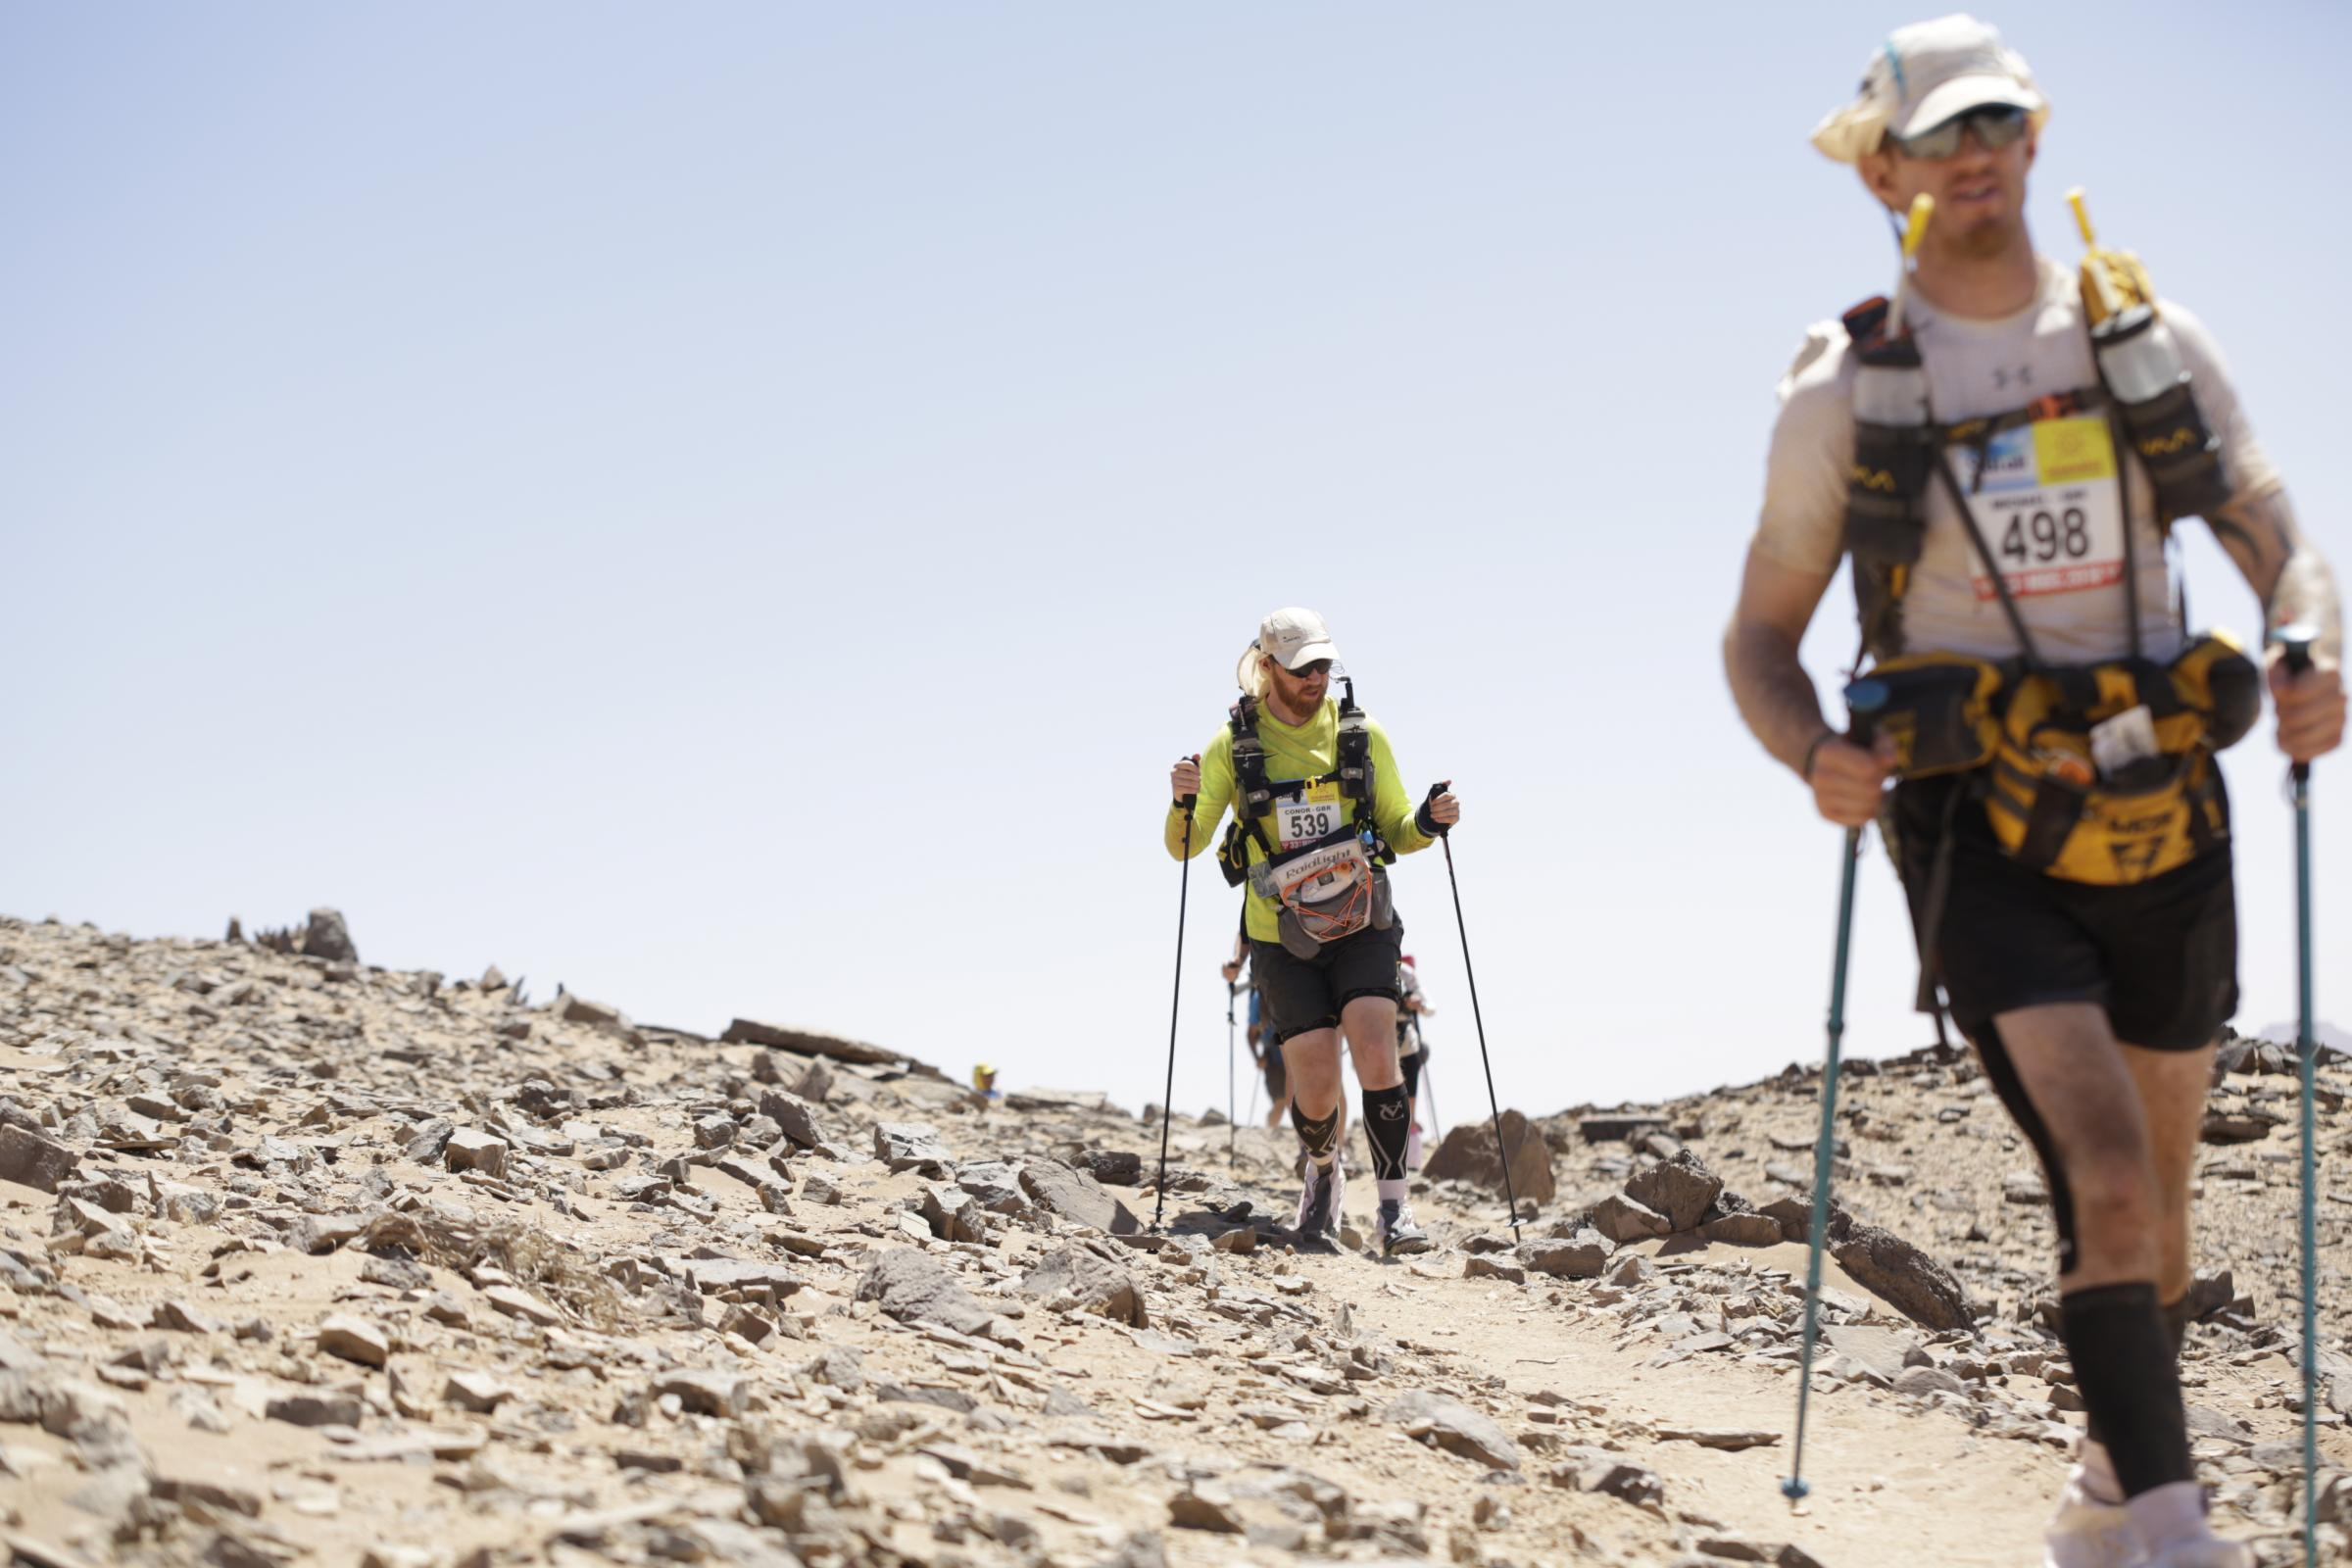 Conor traversed jebels and sand dunes as part of the intense ultra marathon..